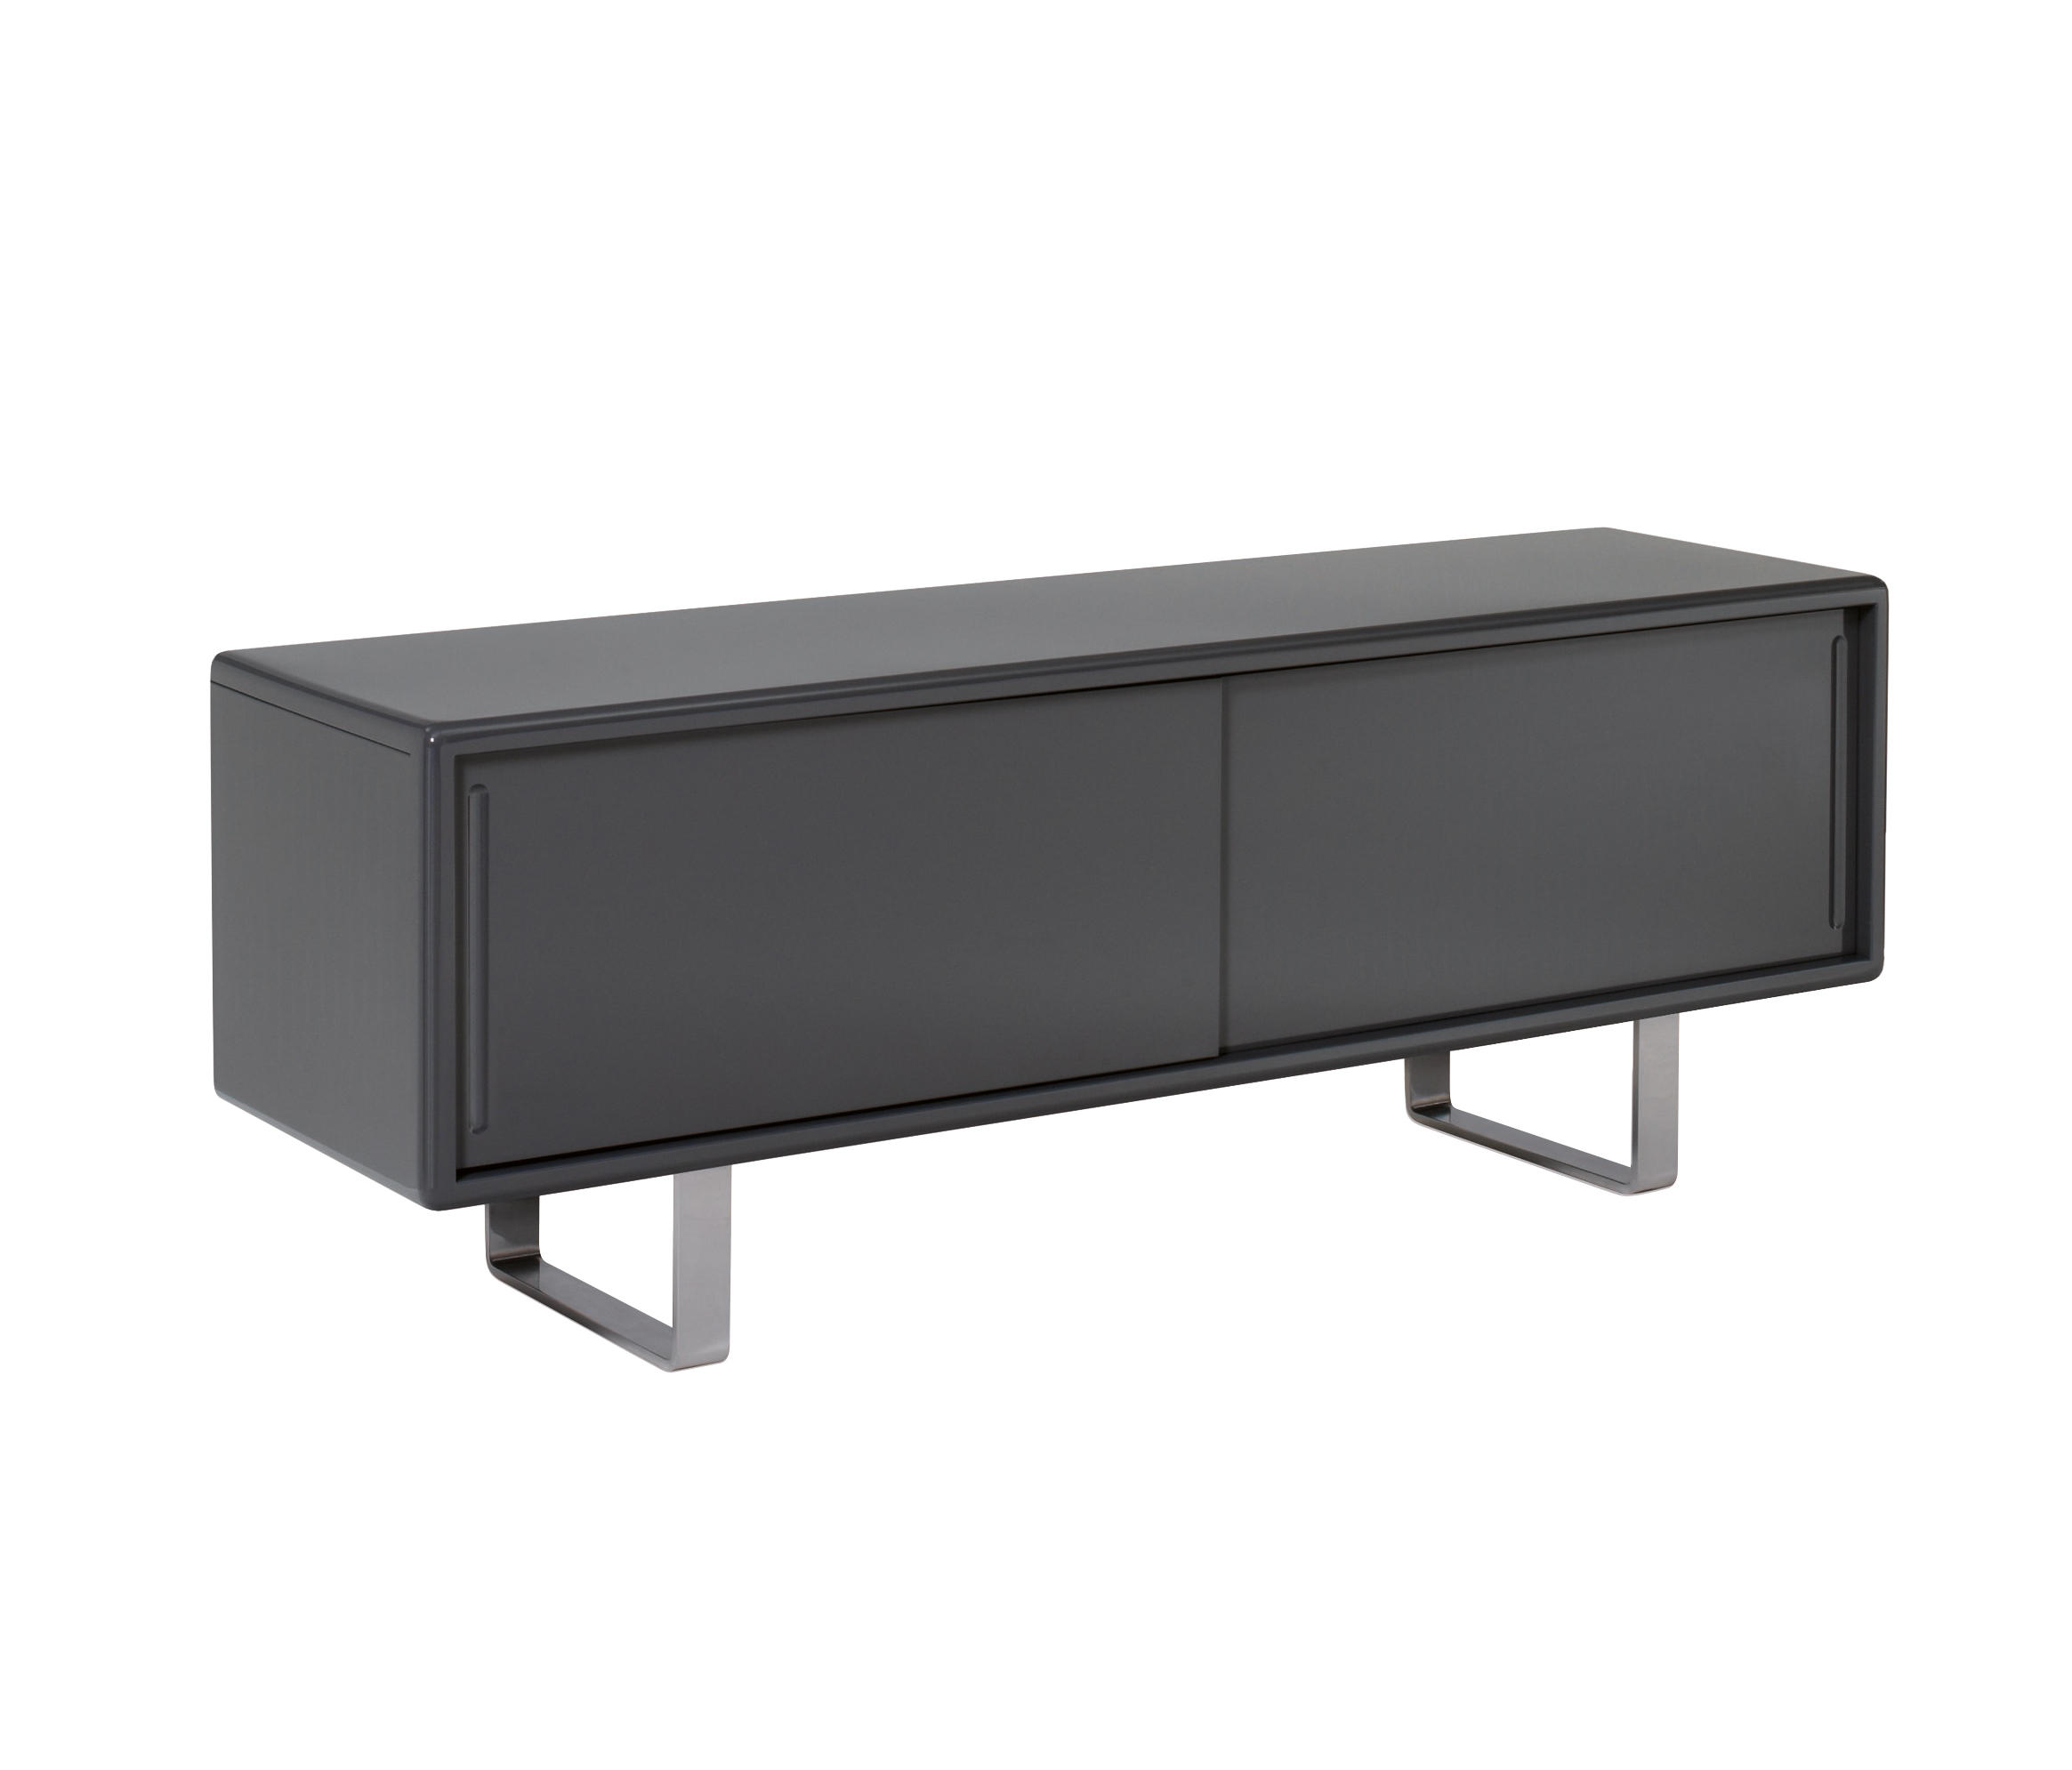 Bürobedarf Oldenburg K16 S1 Sideboard Sideboards From Müller Möbelfabrikation